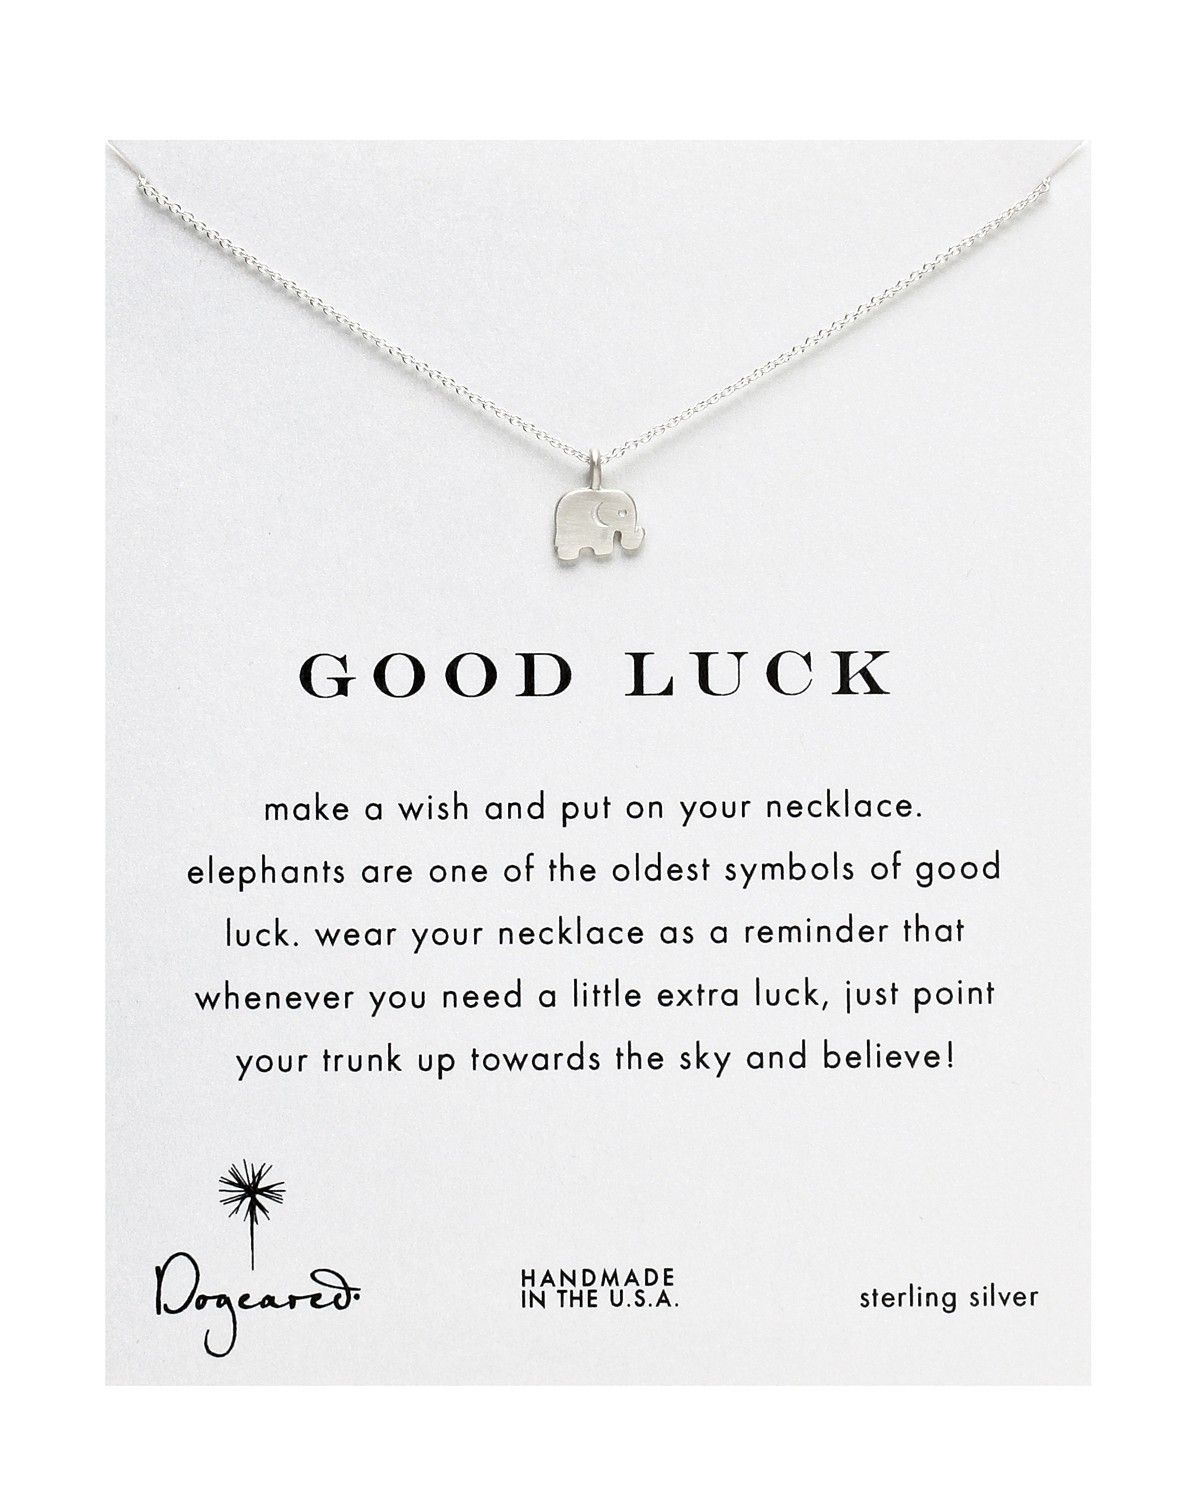 Dogeared good luck elephant necklace bloomingdales dream dogeared good luck elephant 16 sterling silver chain charm symbol necklace new biocorpaavc